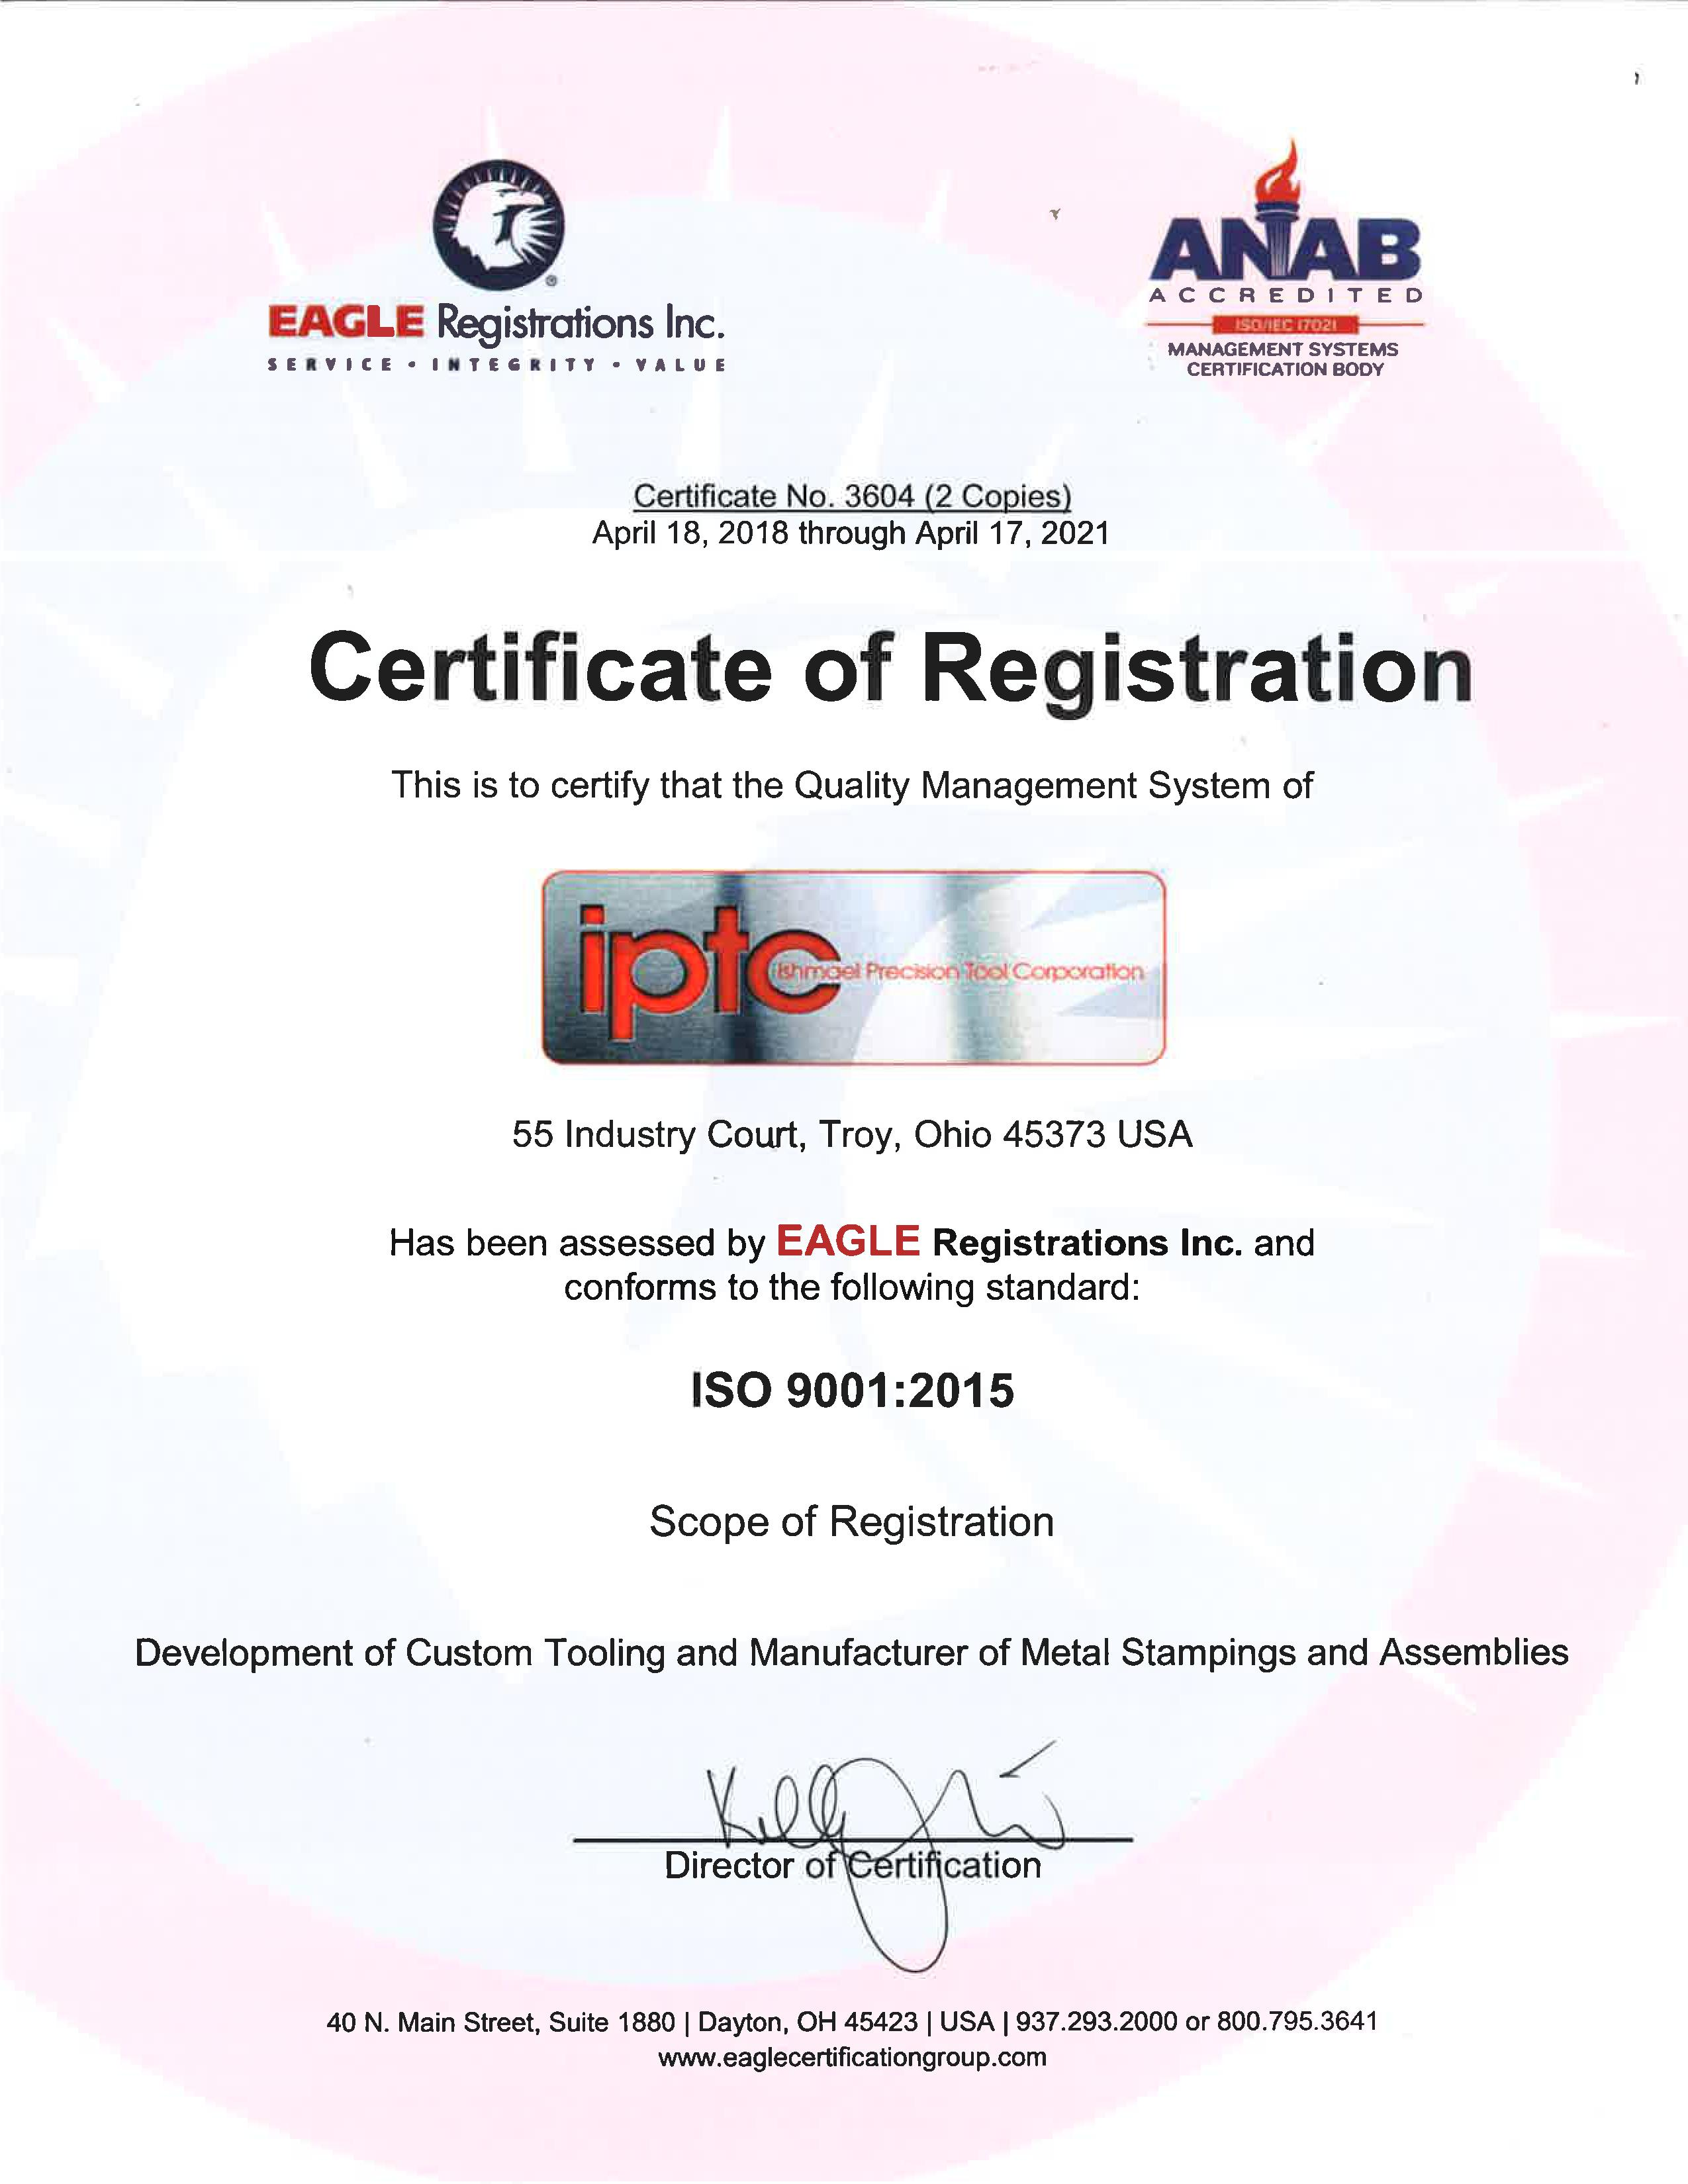 ISO 9001:2015 certs